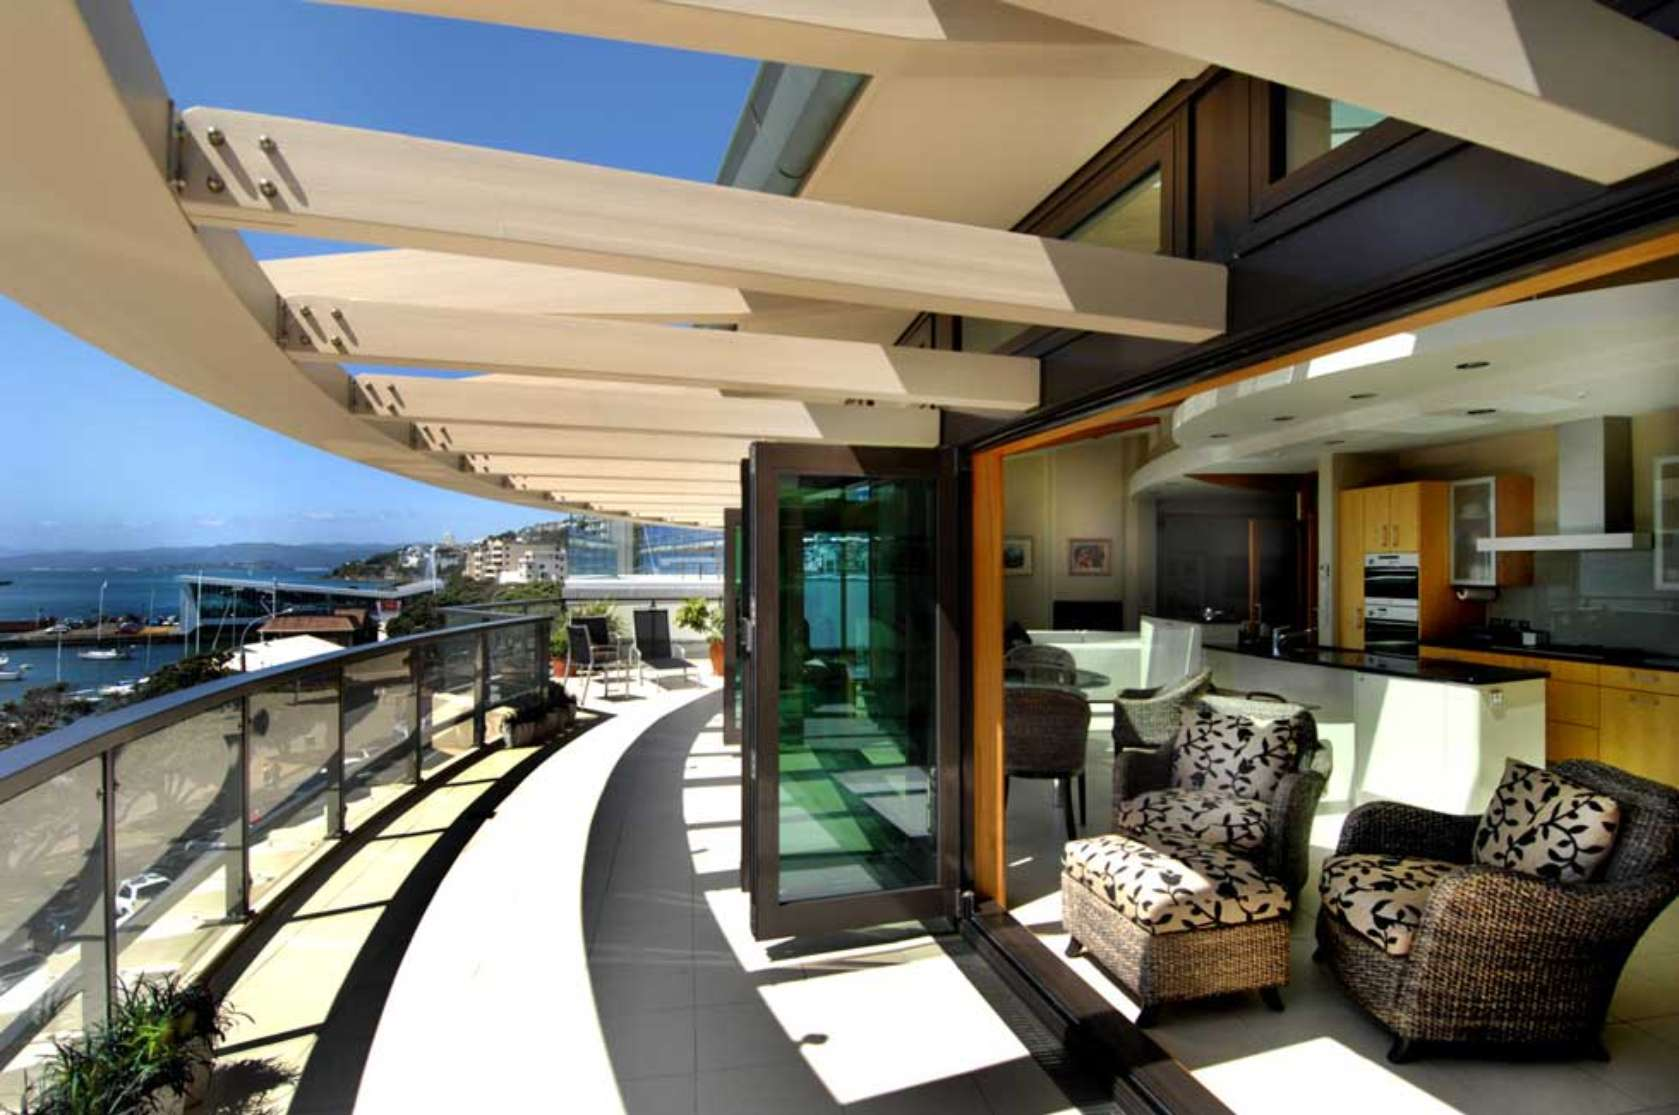 Modern Balconies Interior Design Ideas. luxurious European style of the huge terrace design